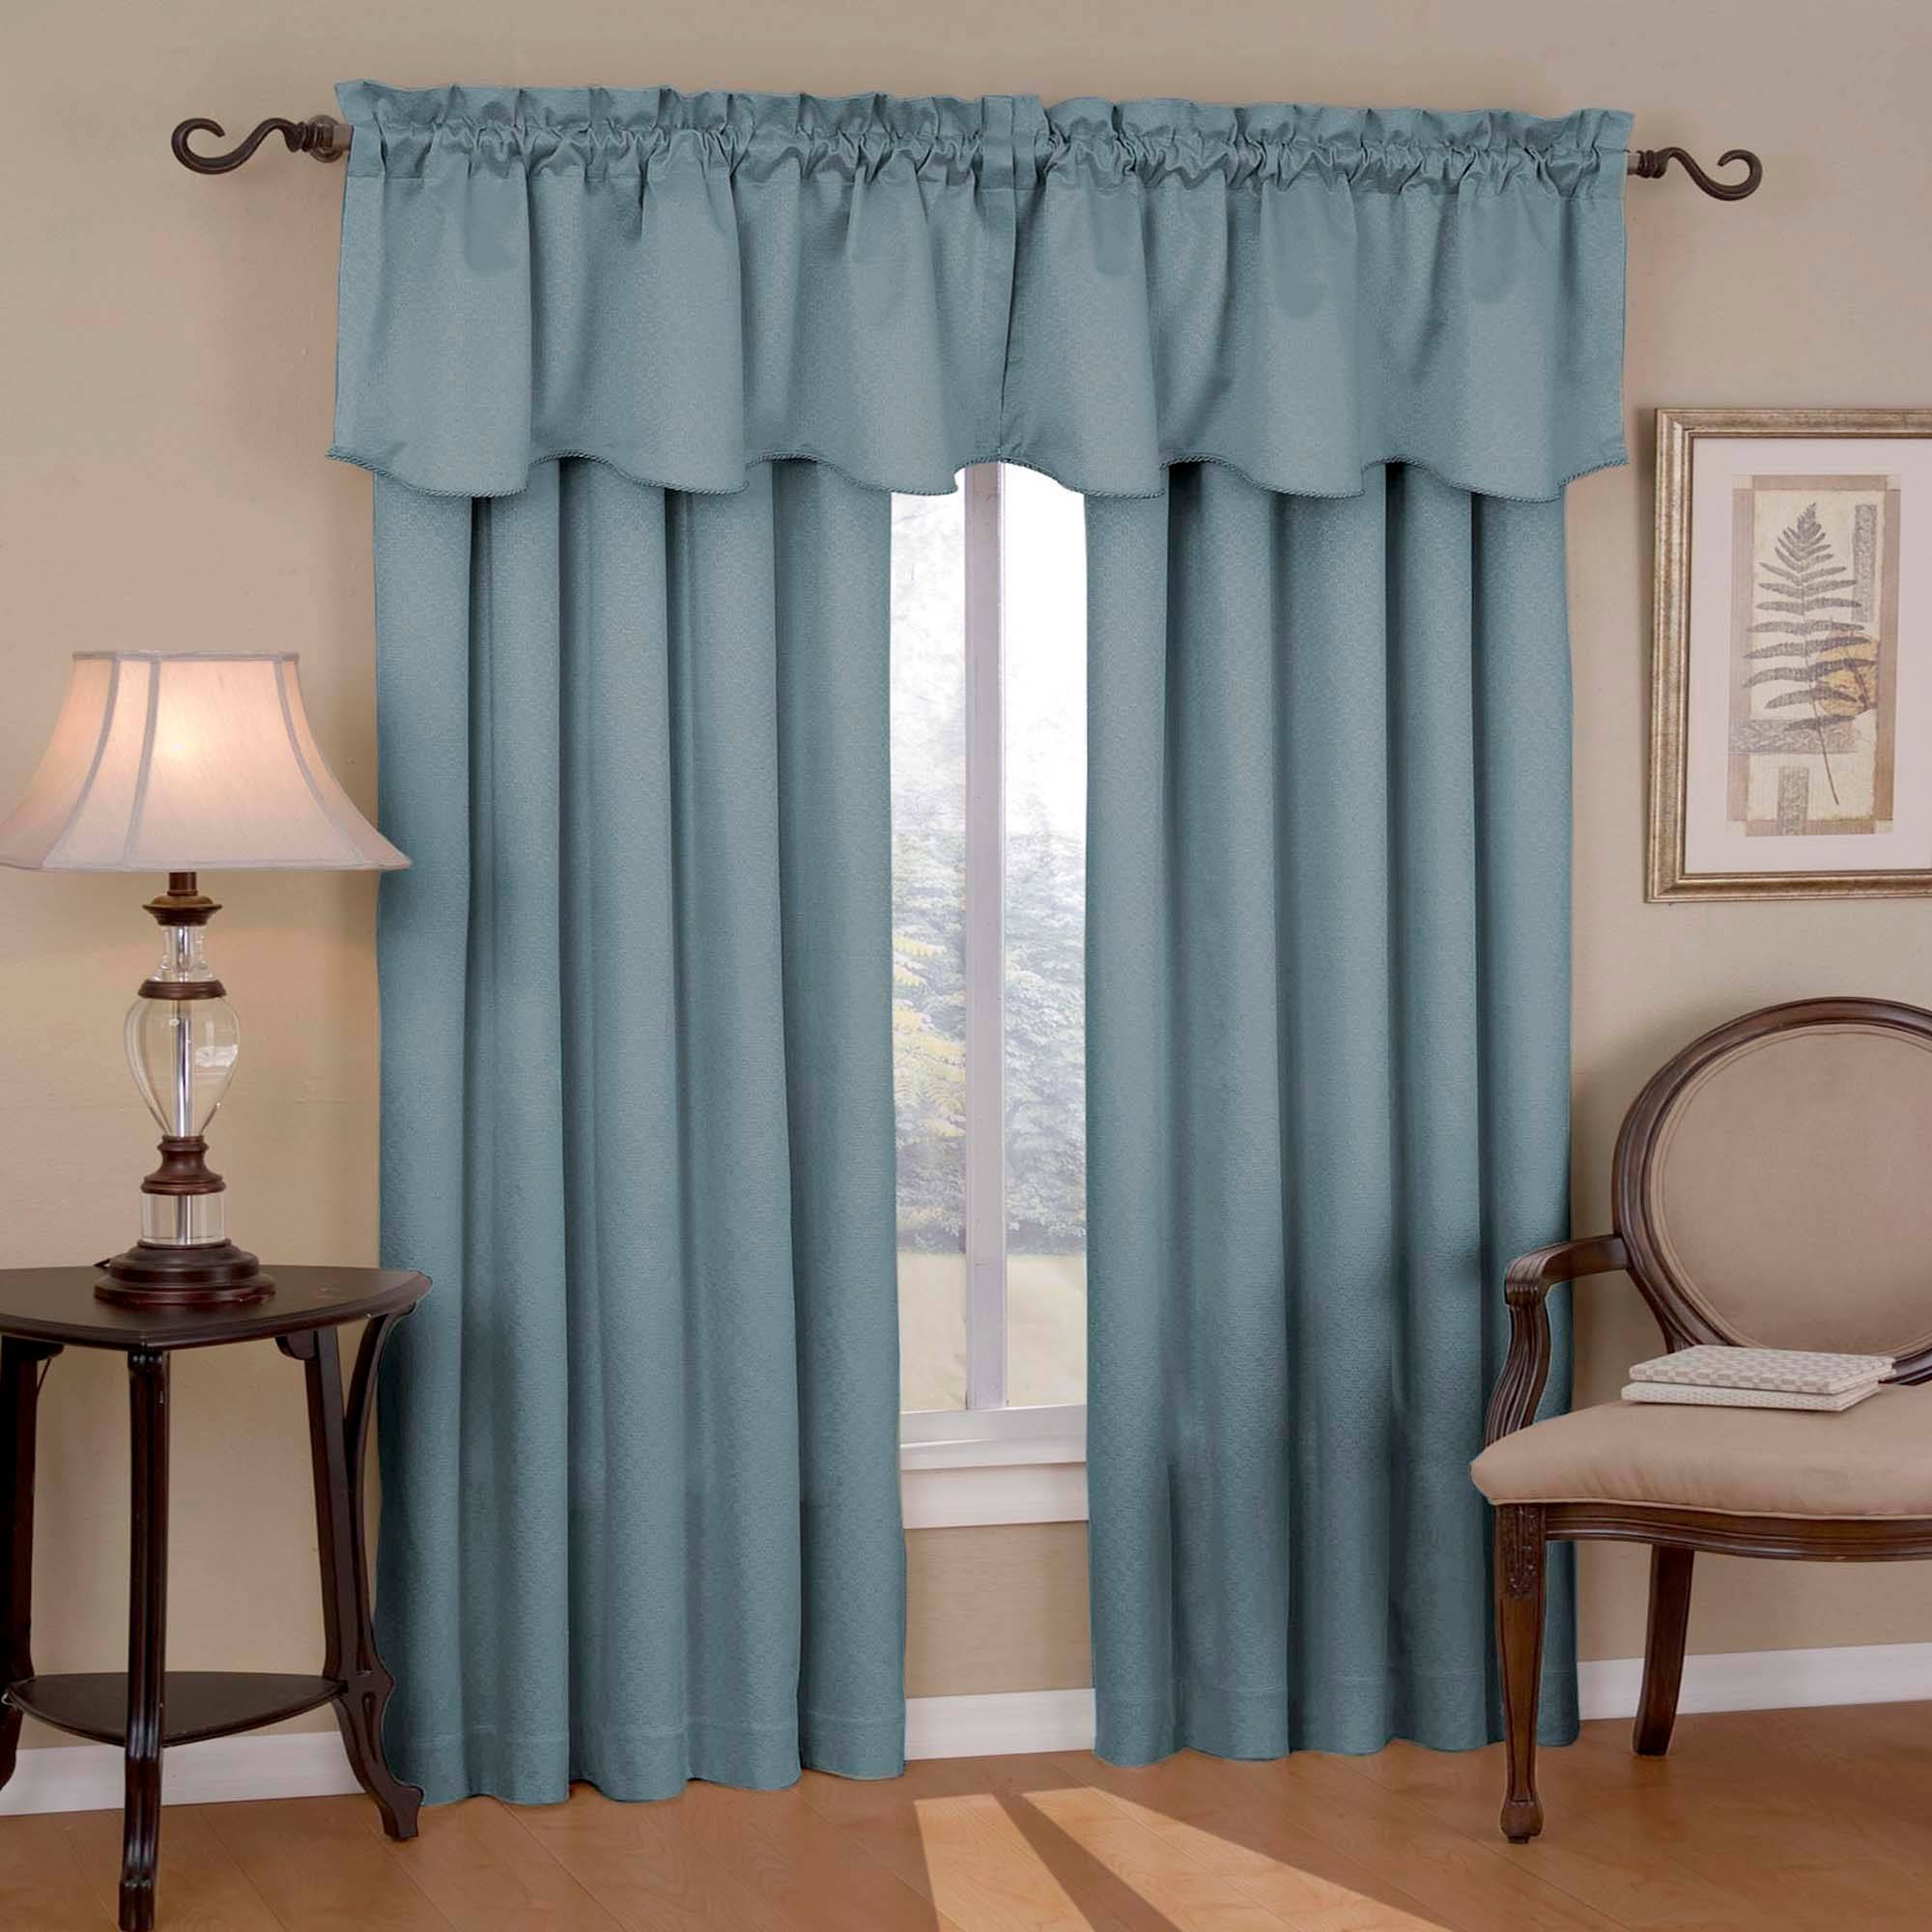 Thermal Curtain Backing | Heavy Insulated Curtains | Thermal Insulated Curtains